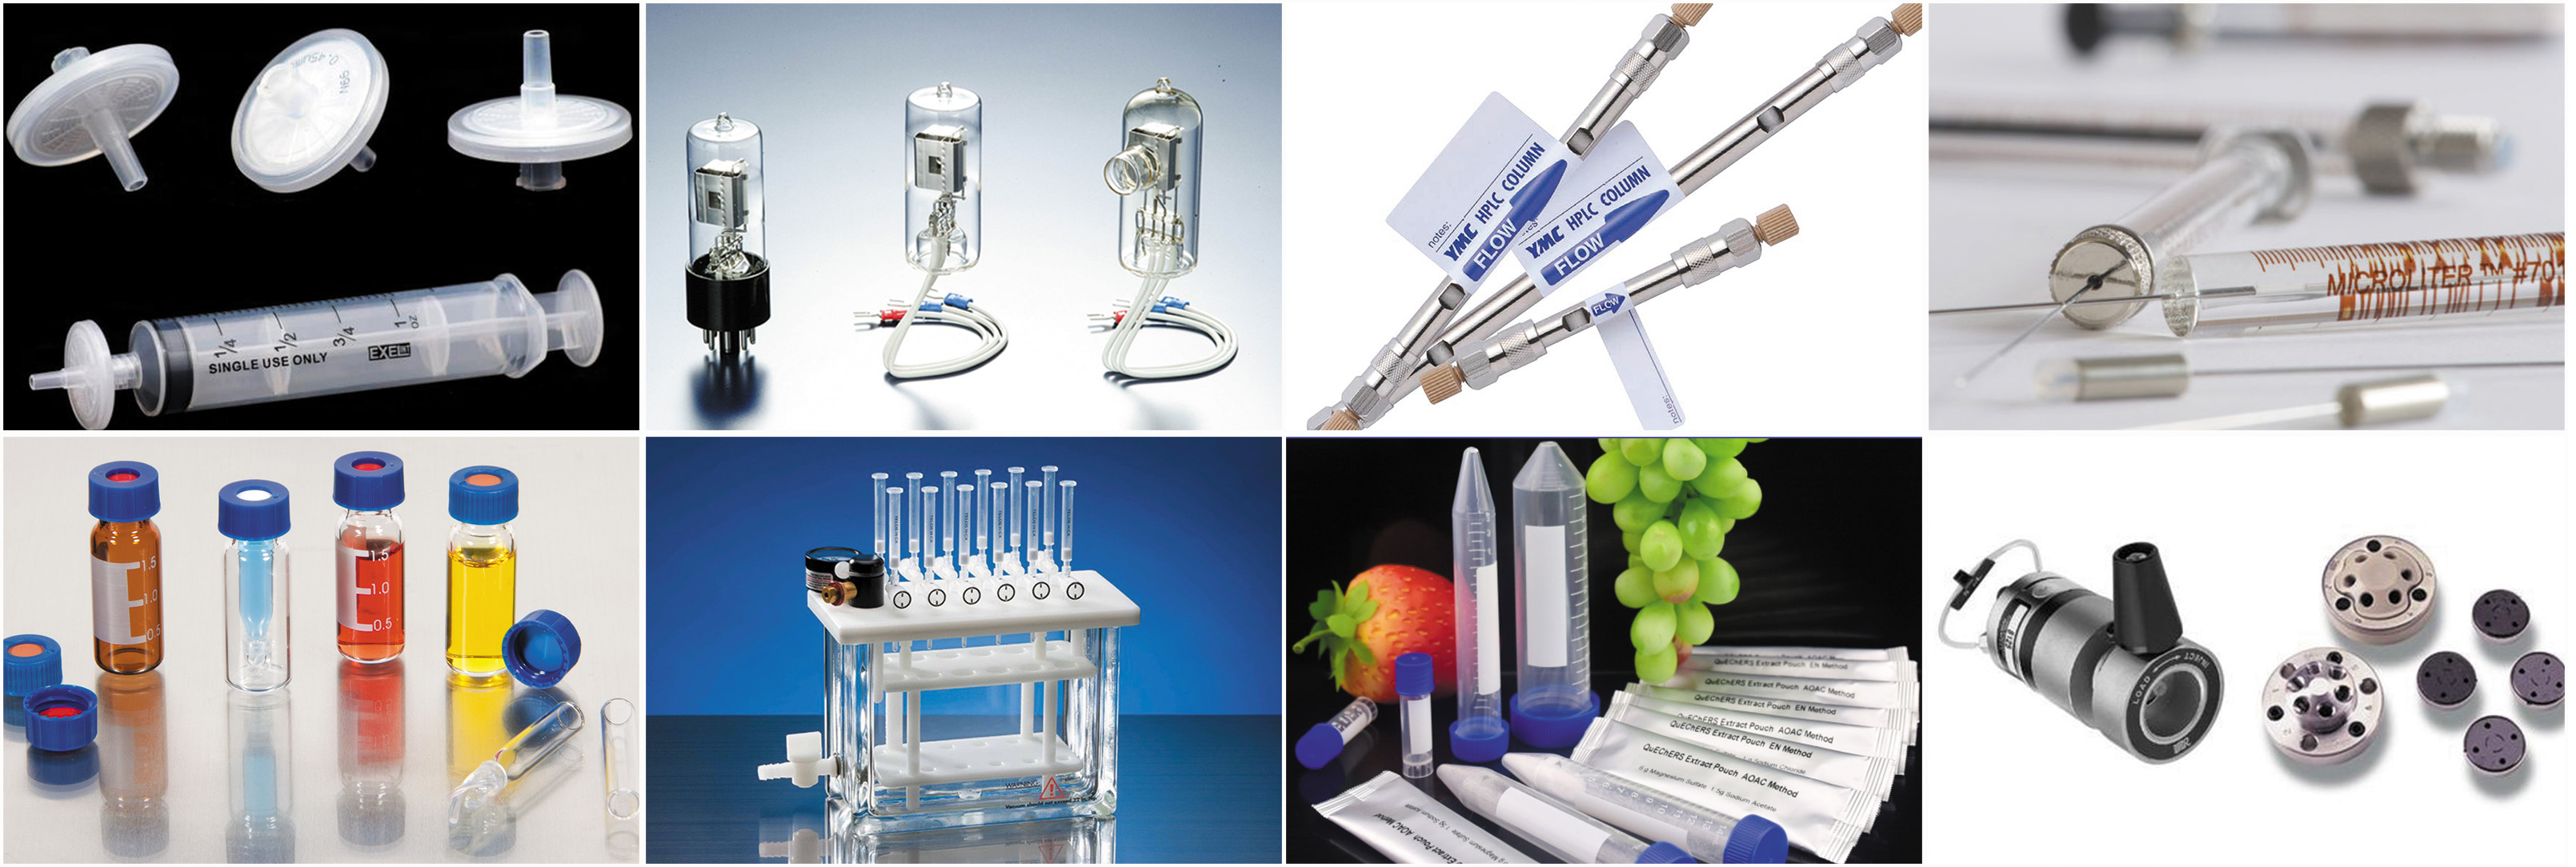 T&T is a distributor of chromatography and  mass spectrometry supplies and accessories